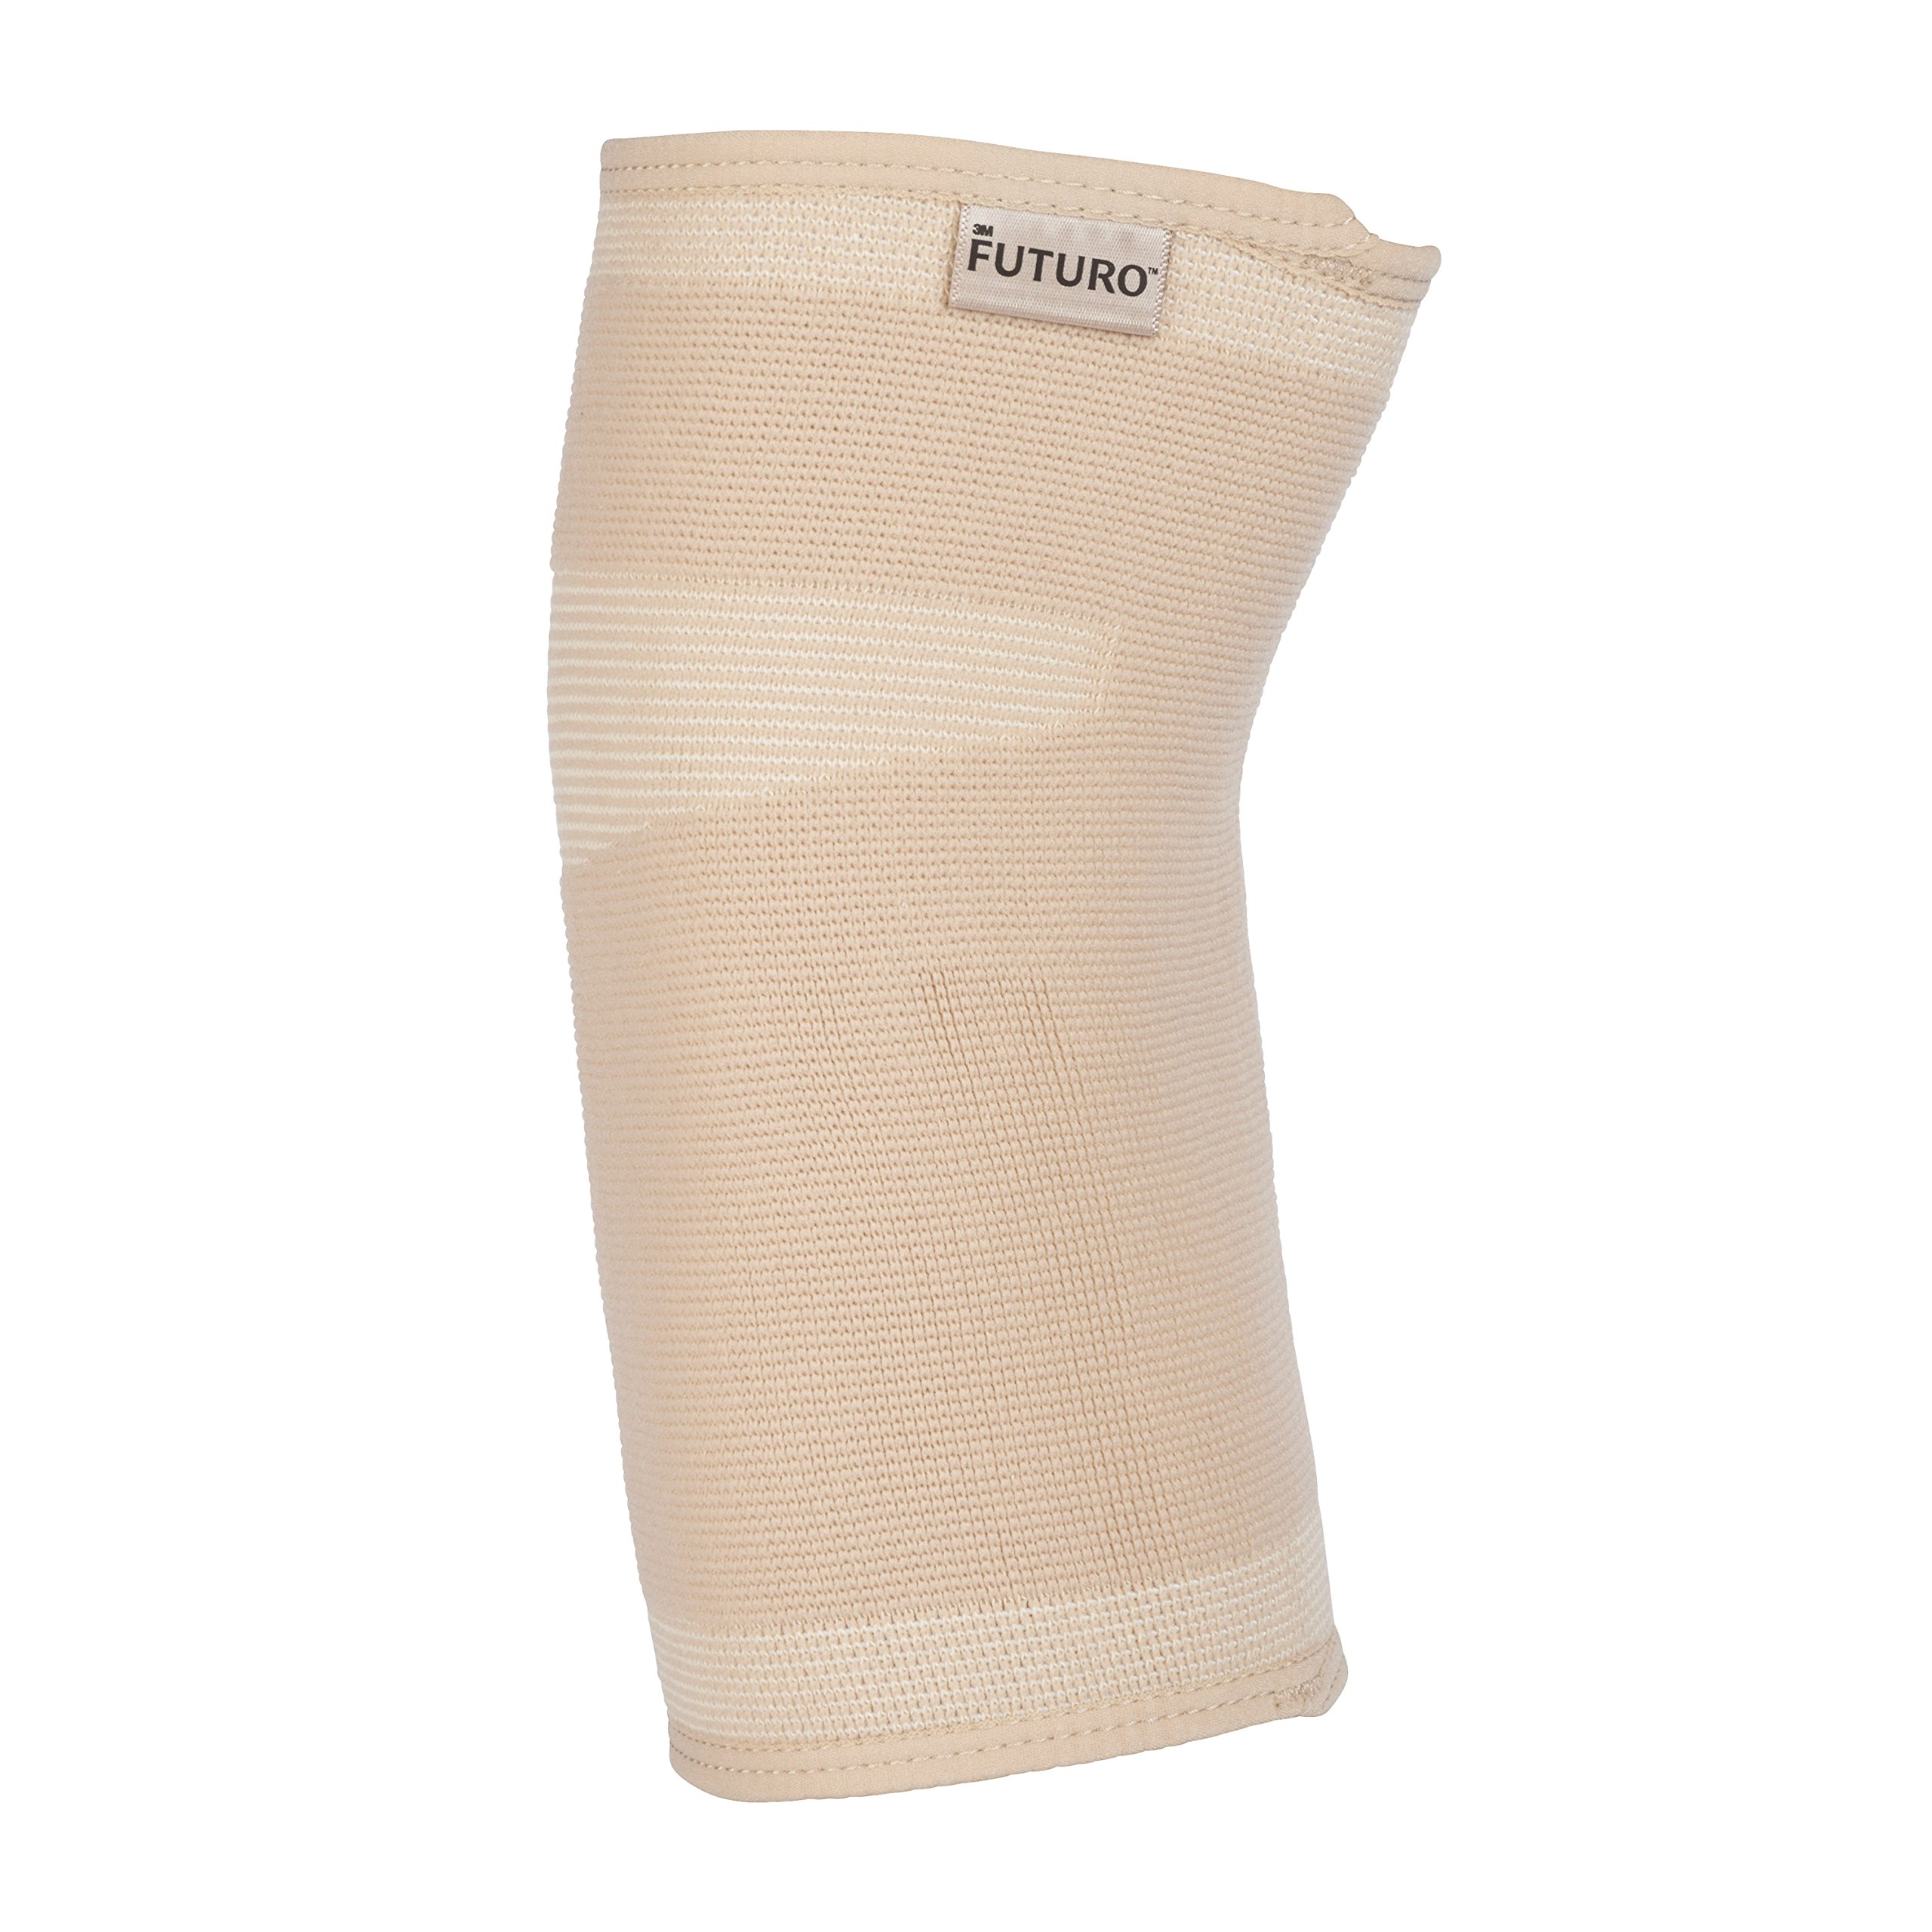 Futuro Comfort Lift Elbow Support Brace, Small, Beige, Mild Support